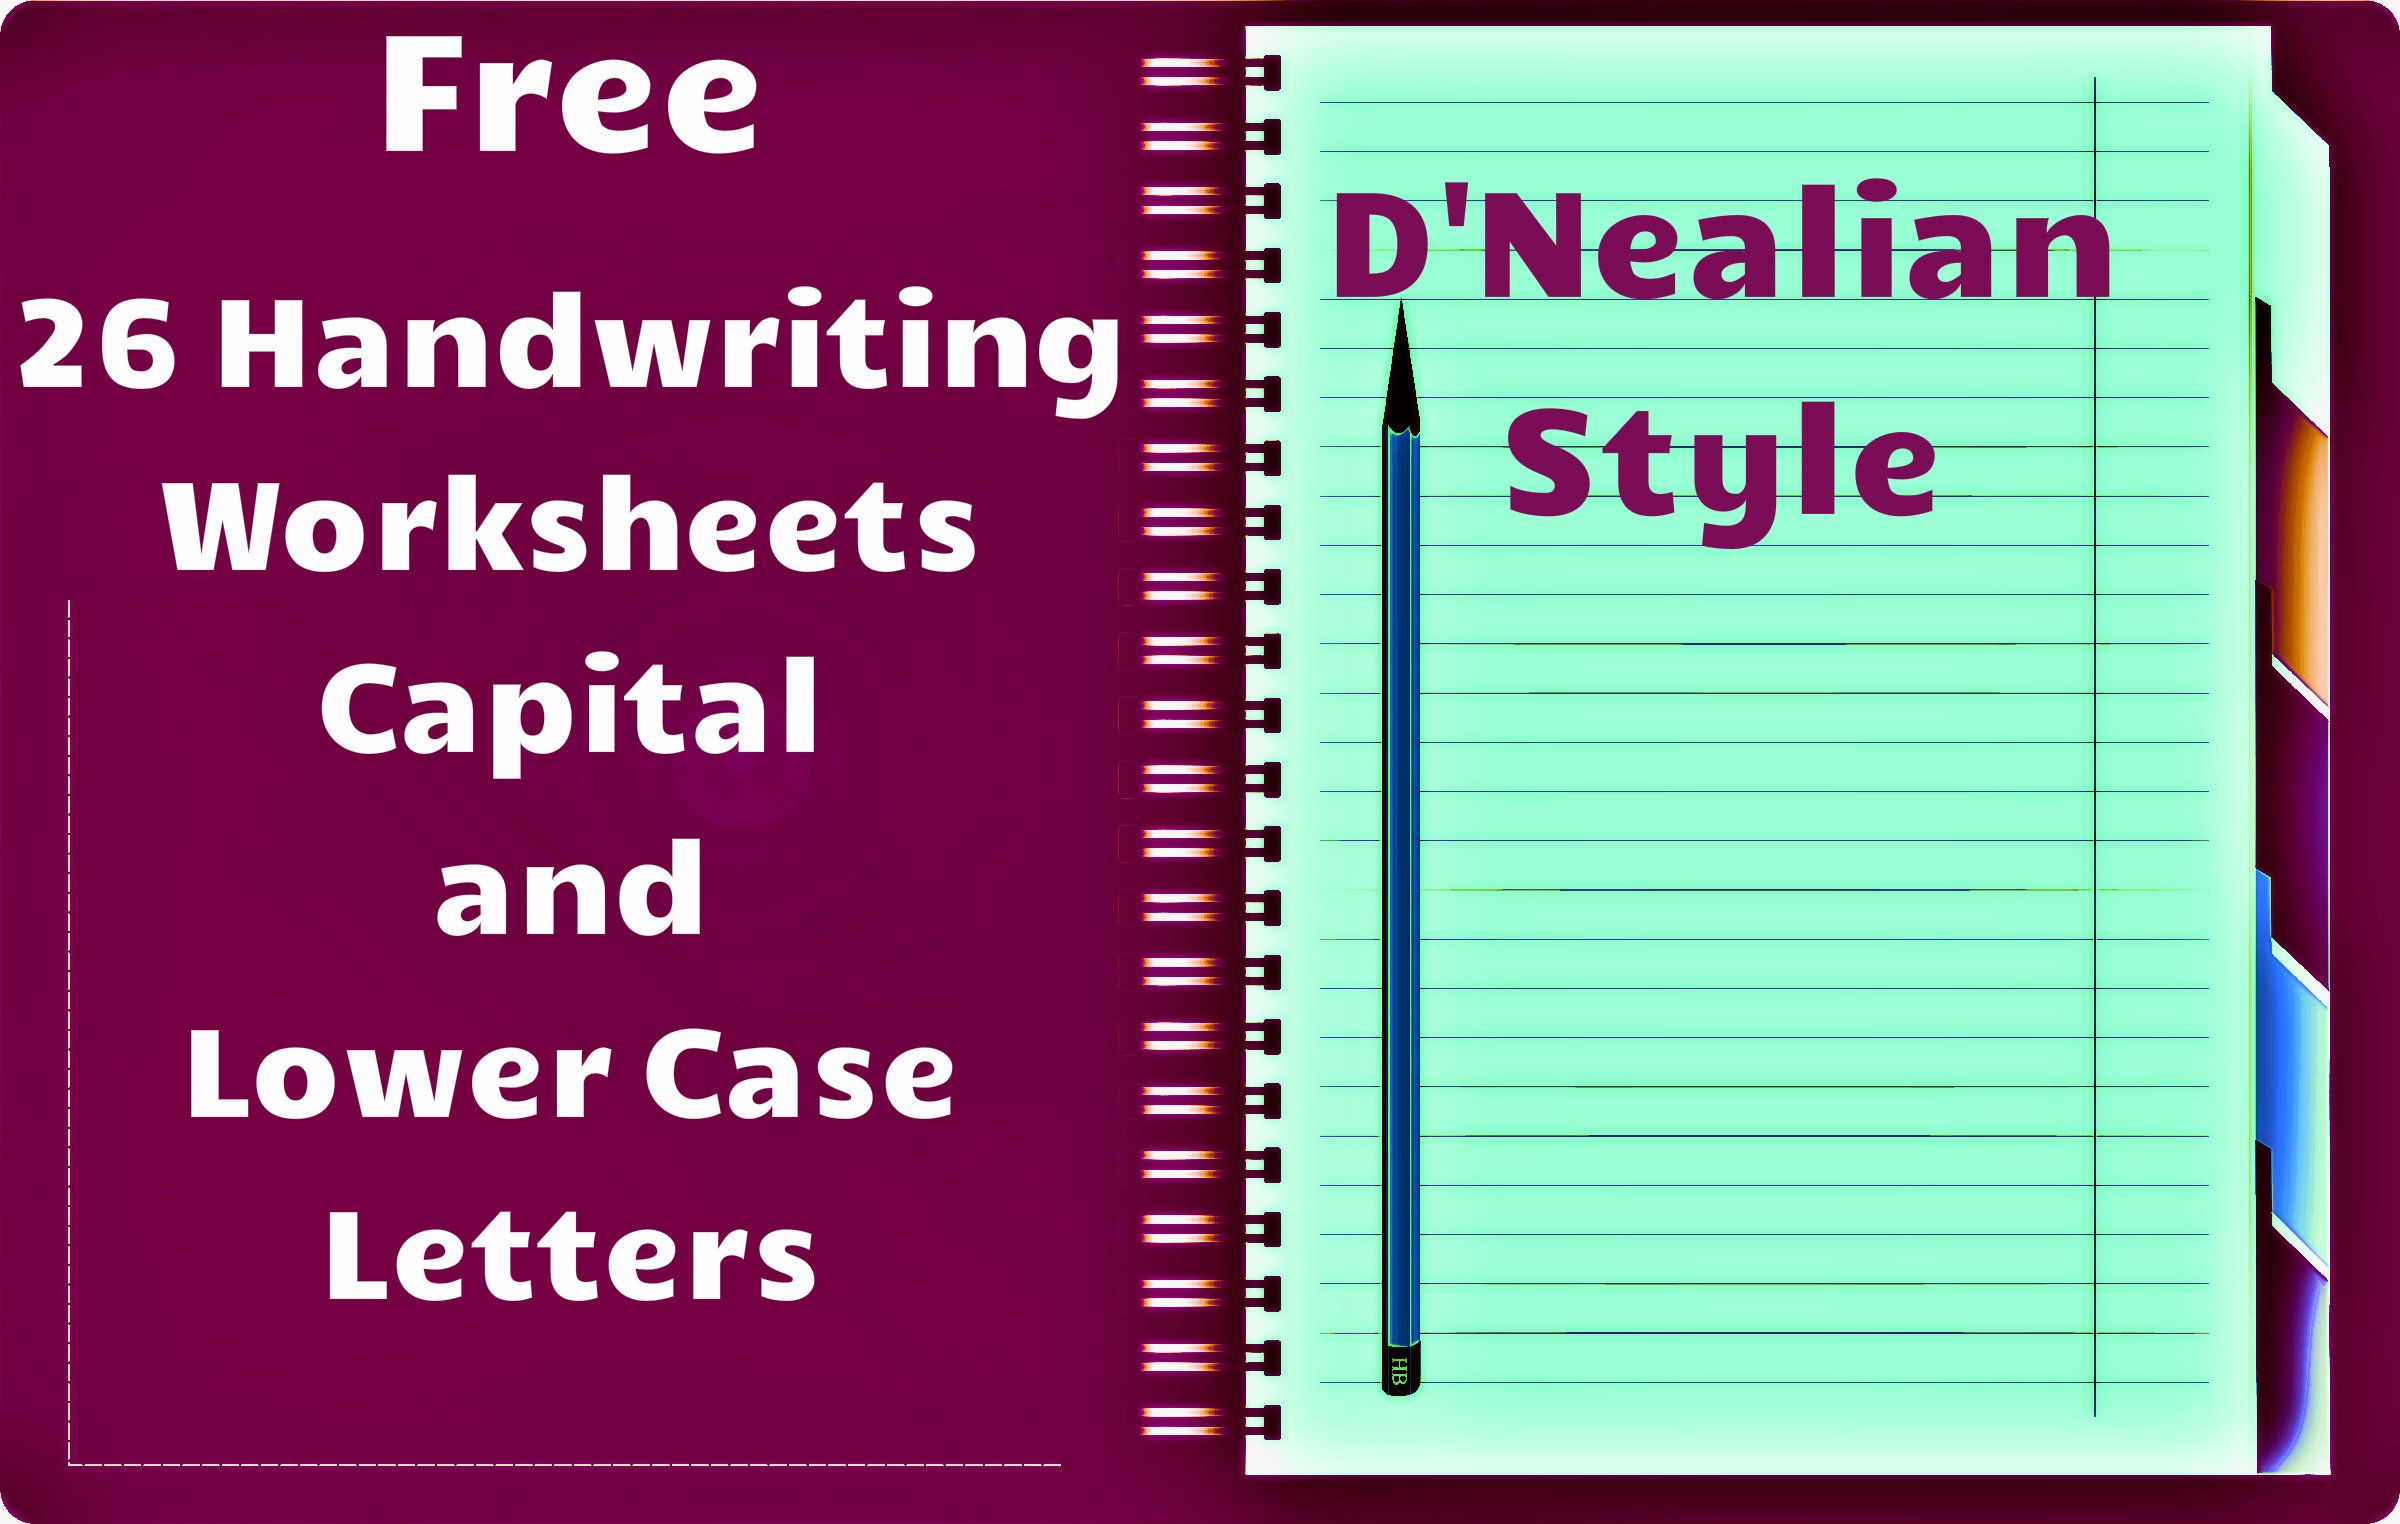 Free Handwriting Worksheets Includes worksheets for all capital as